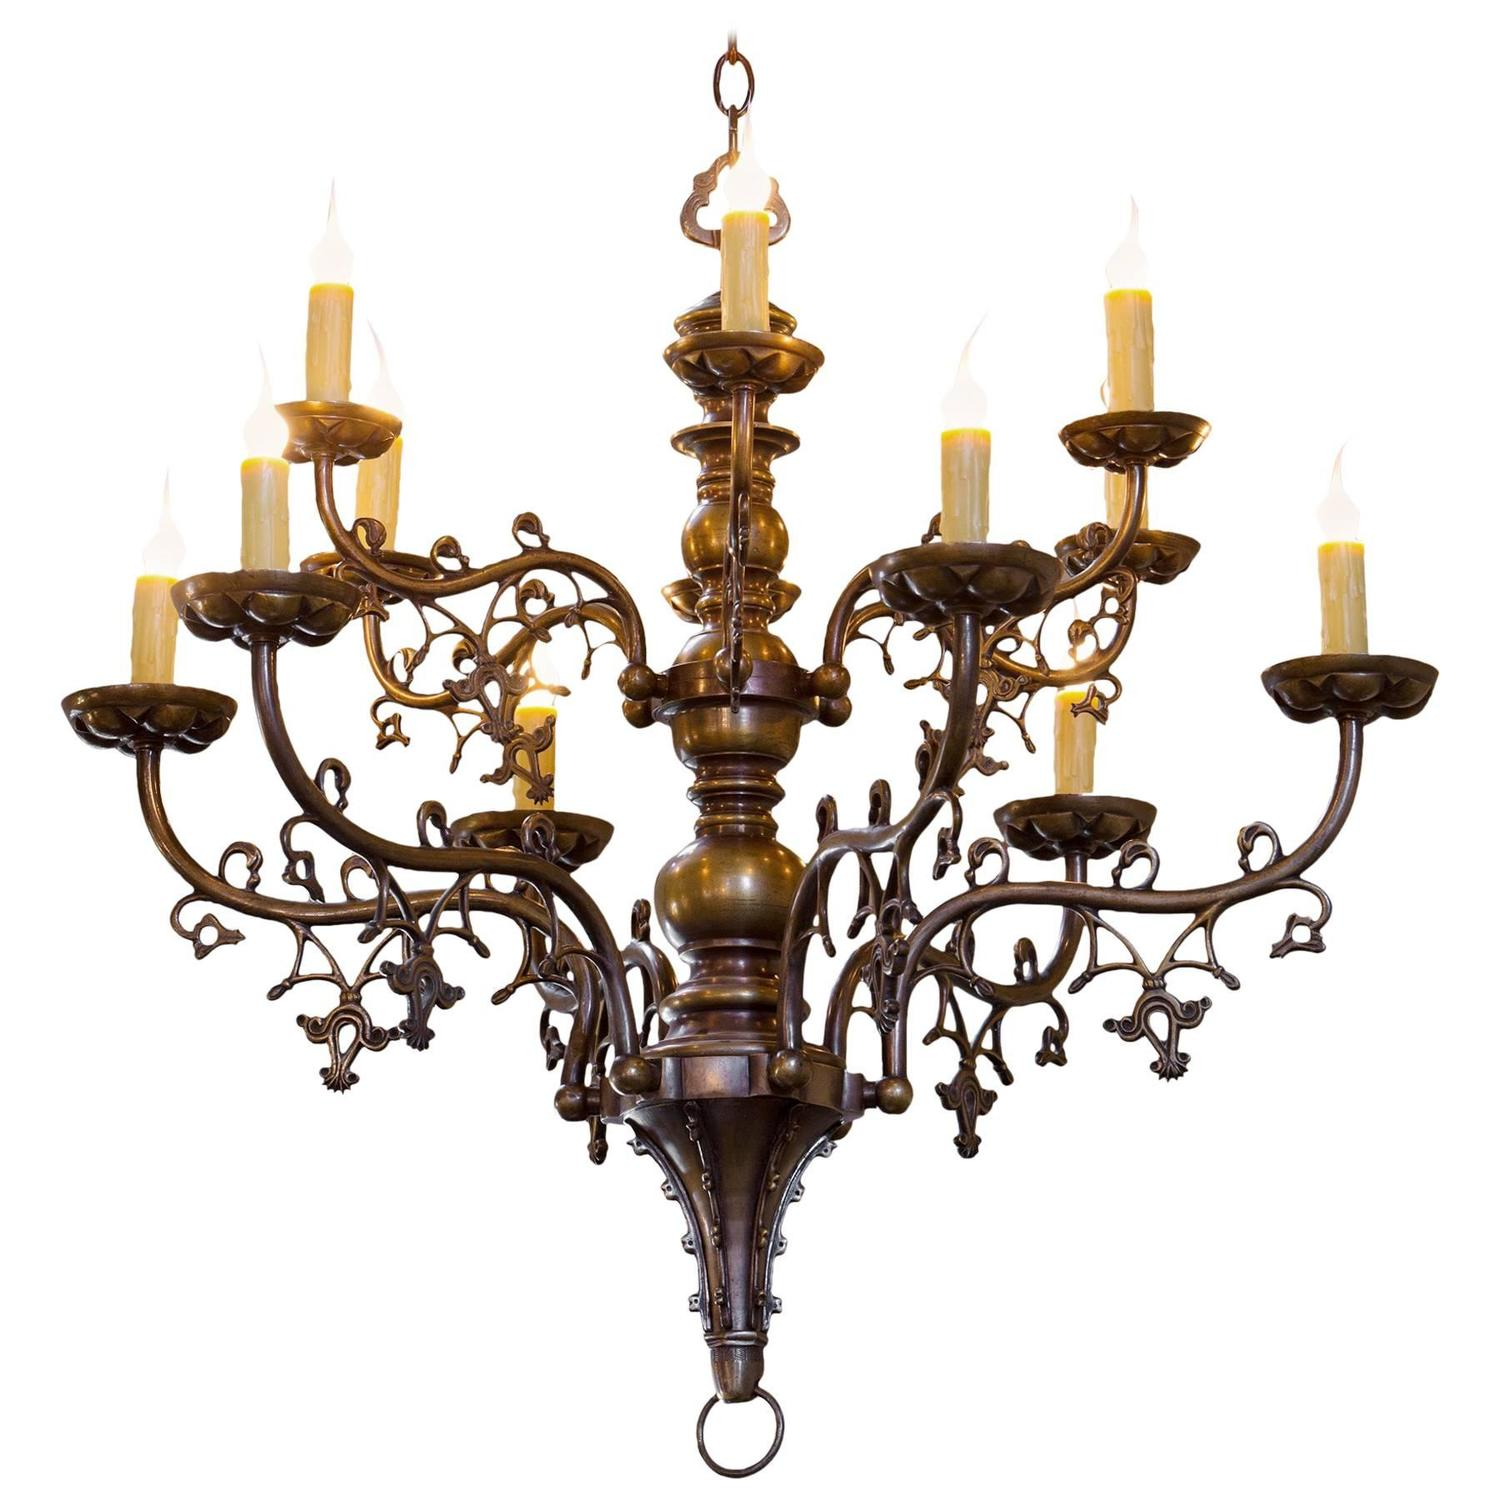 Antique Belgian Gothic Style Bronze Chandelier with Twelve Arms, circa 1900 - Gothic Revival Chandeliers And Pendants - 53 For Sale At 1stdibs